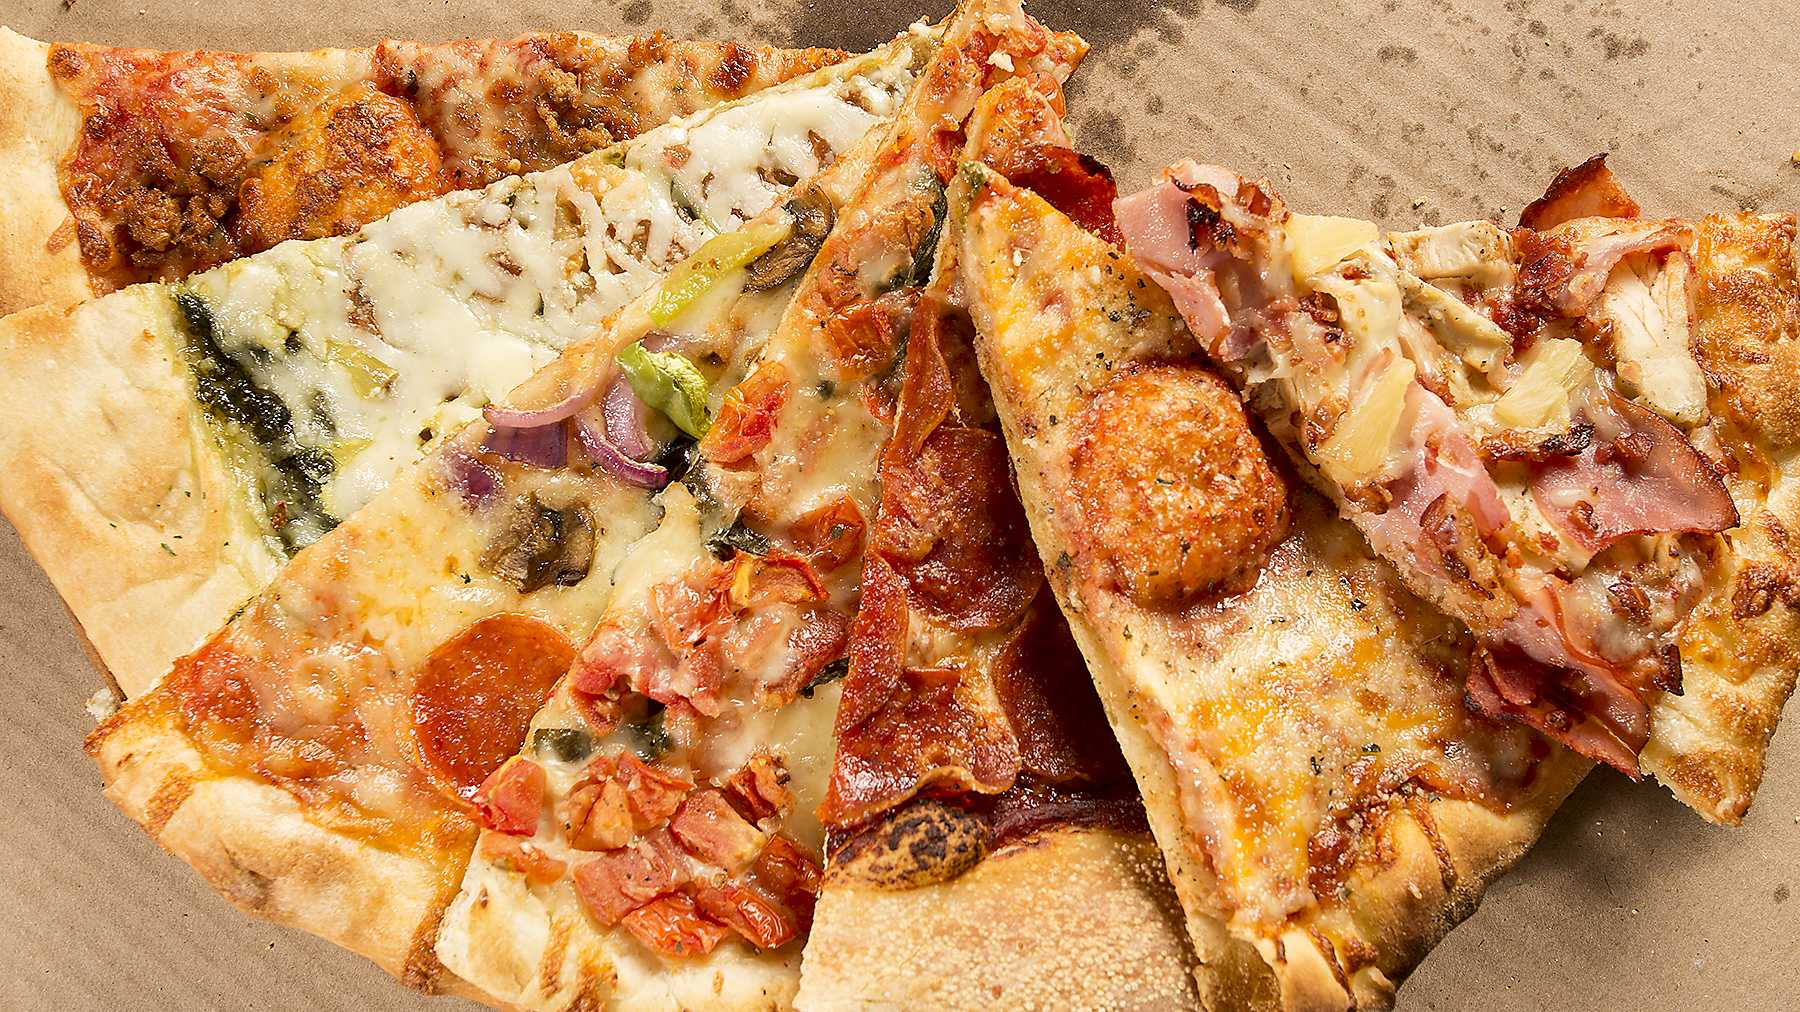 fort collins pizza specials for super bowl sunday the rocky